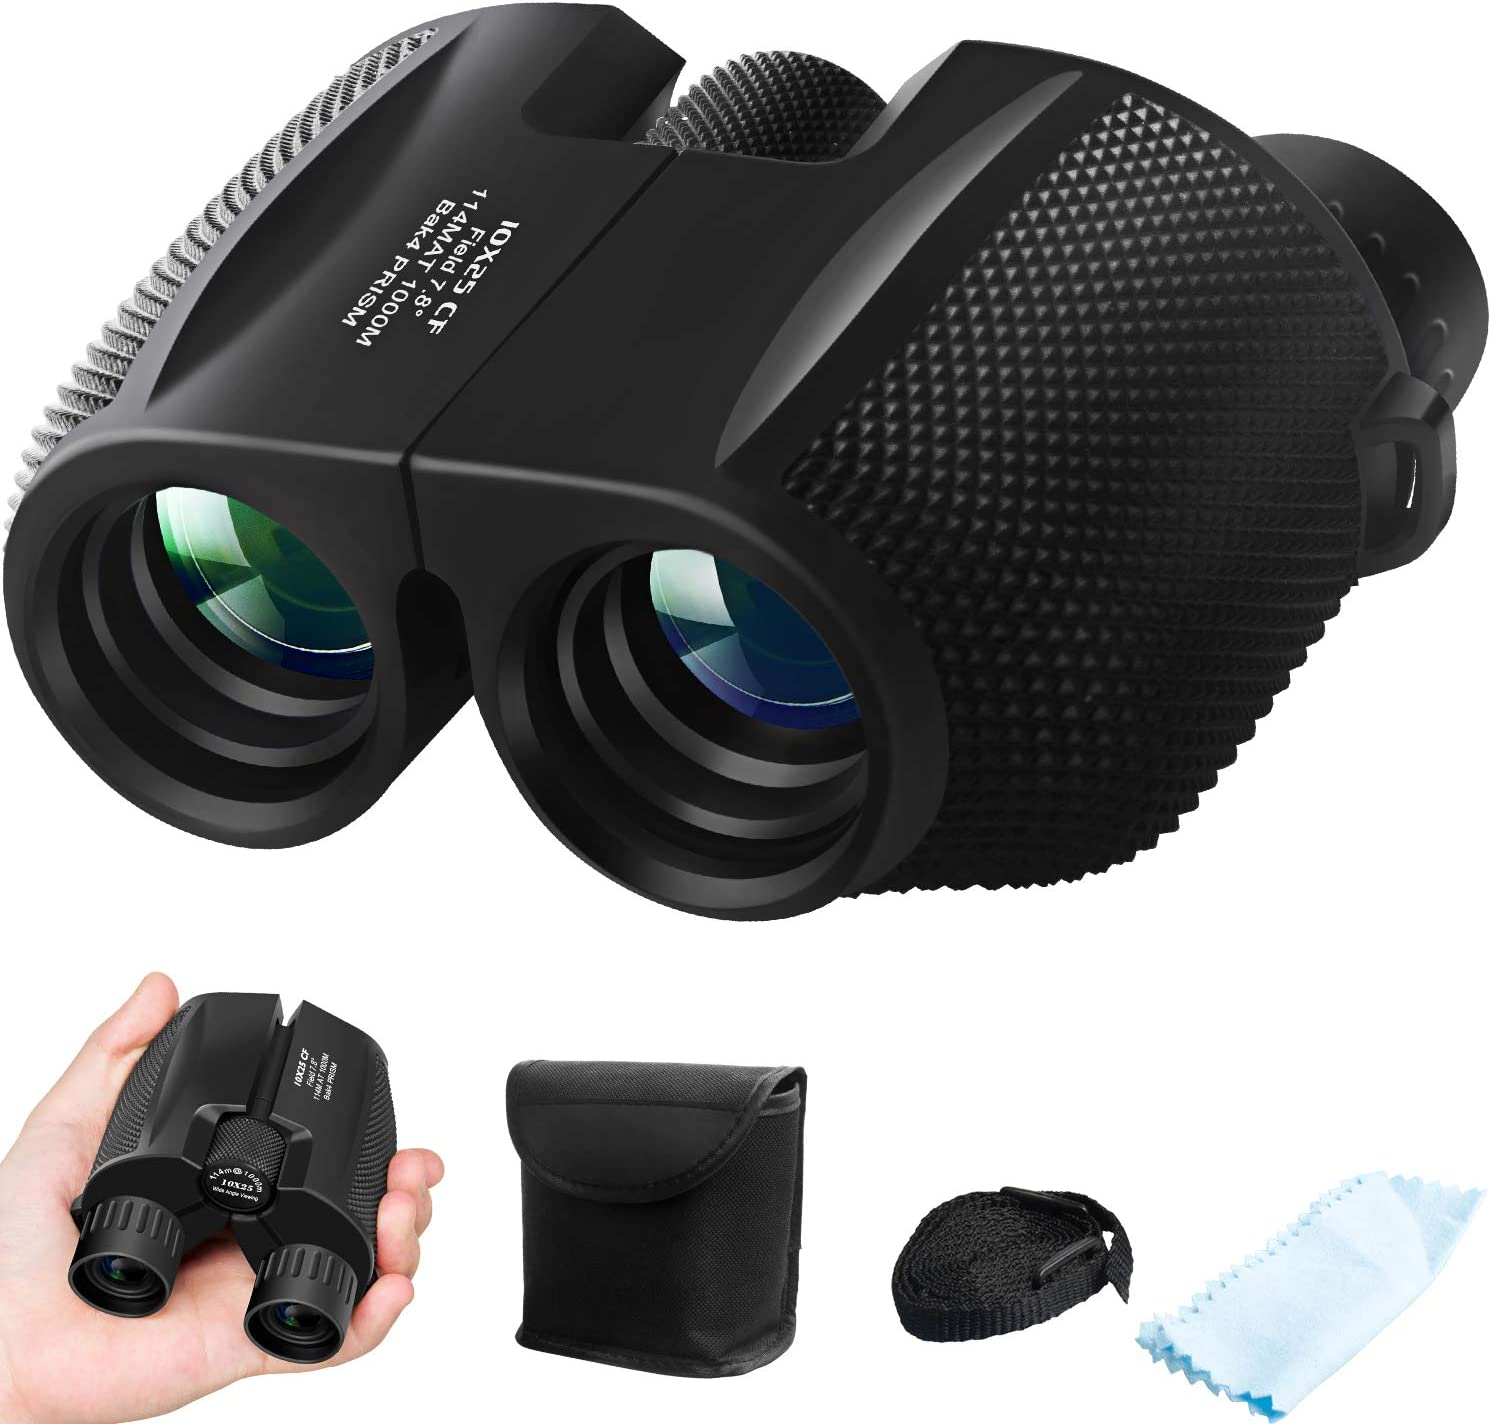 Binoculars for Adults Kids, ZIPOUTE 10x25 Folding Compact Binoculars with Weak Light Night Vision Clear for Birds Watching Hunting Traveling Concerts Outdoor Sports with Strap Carrying Bag